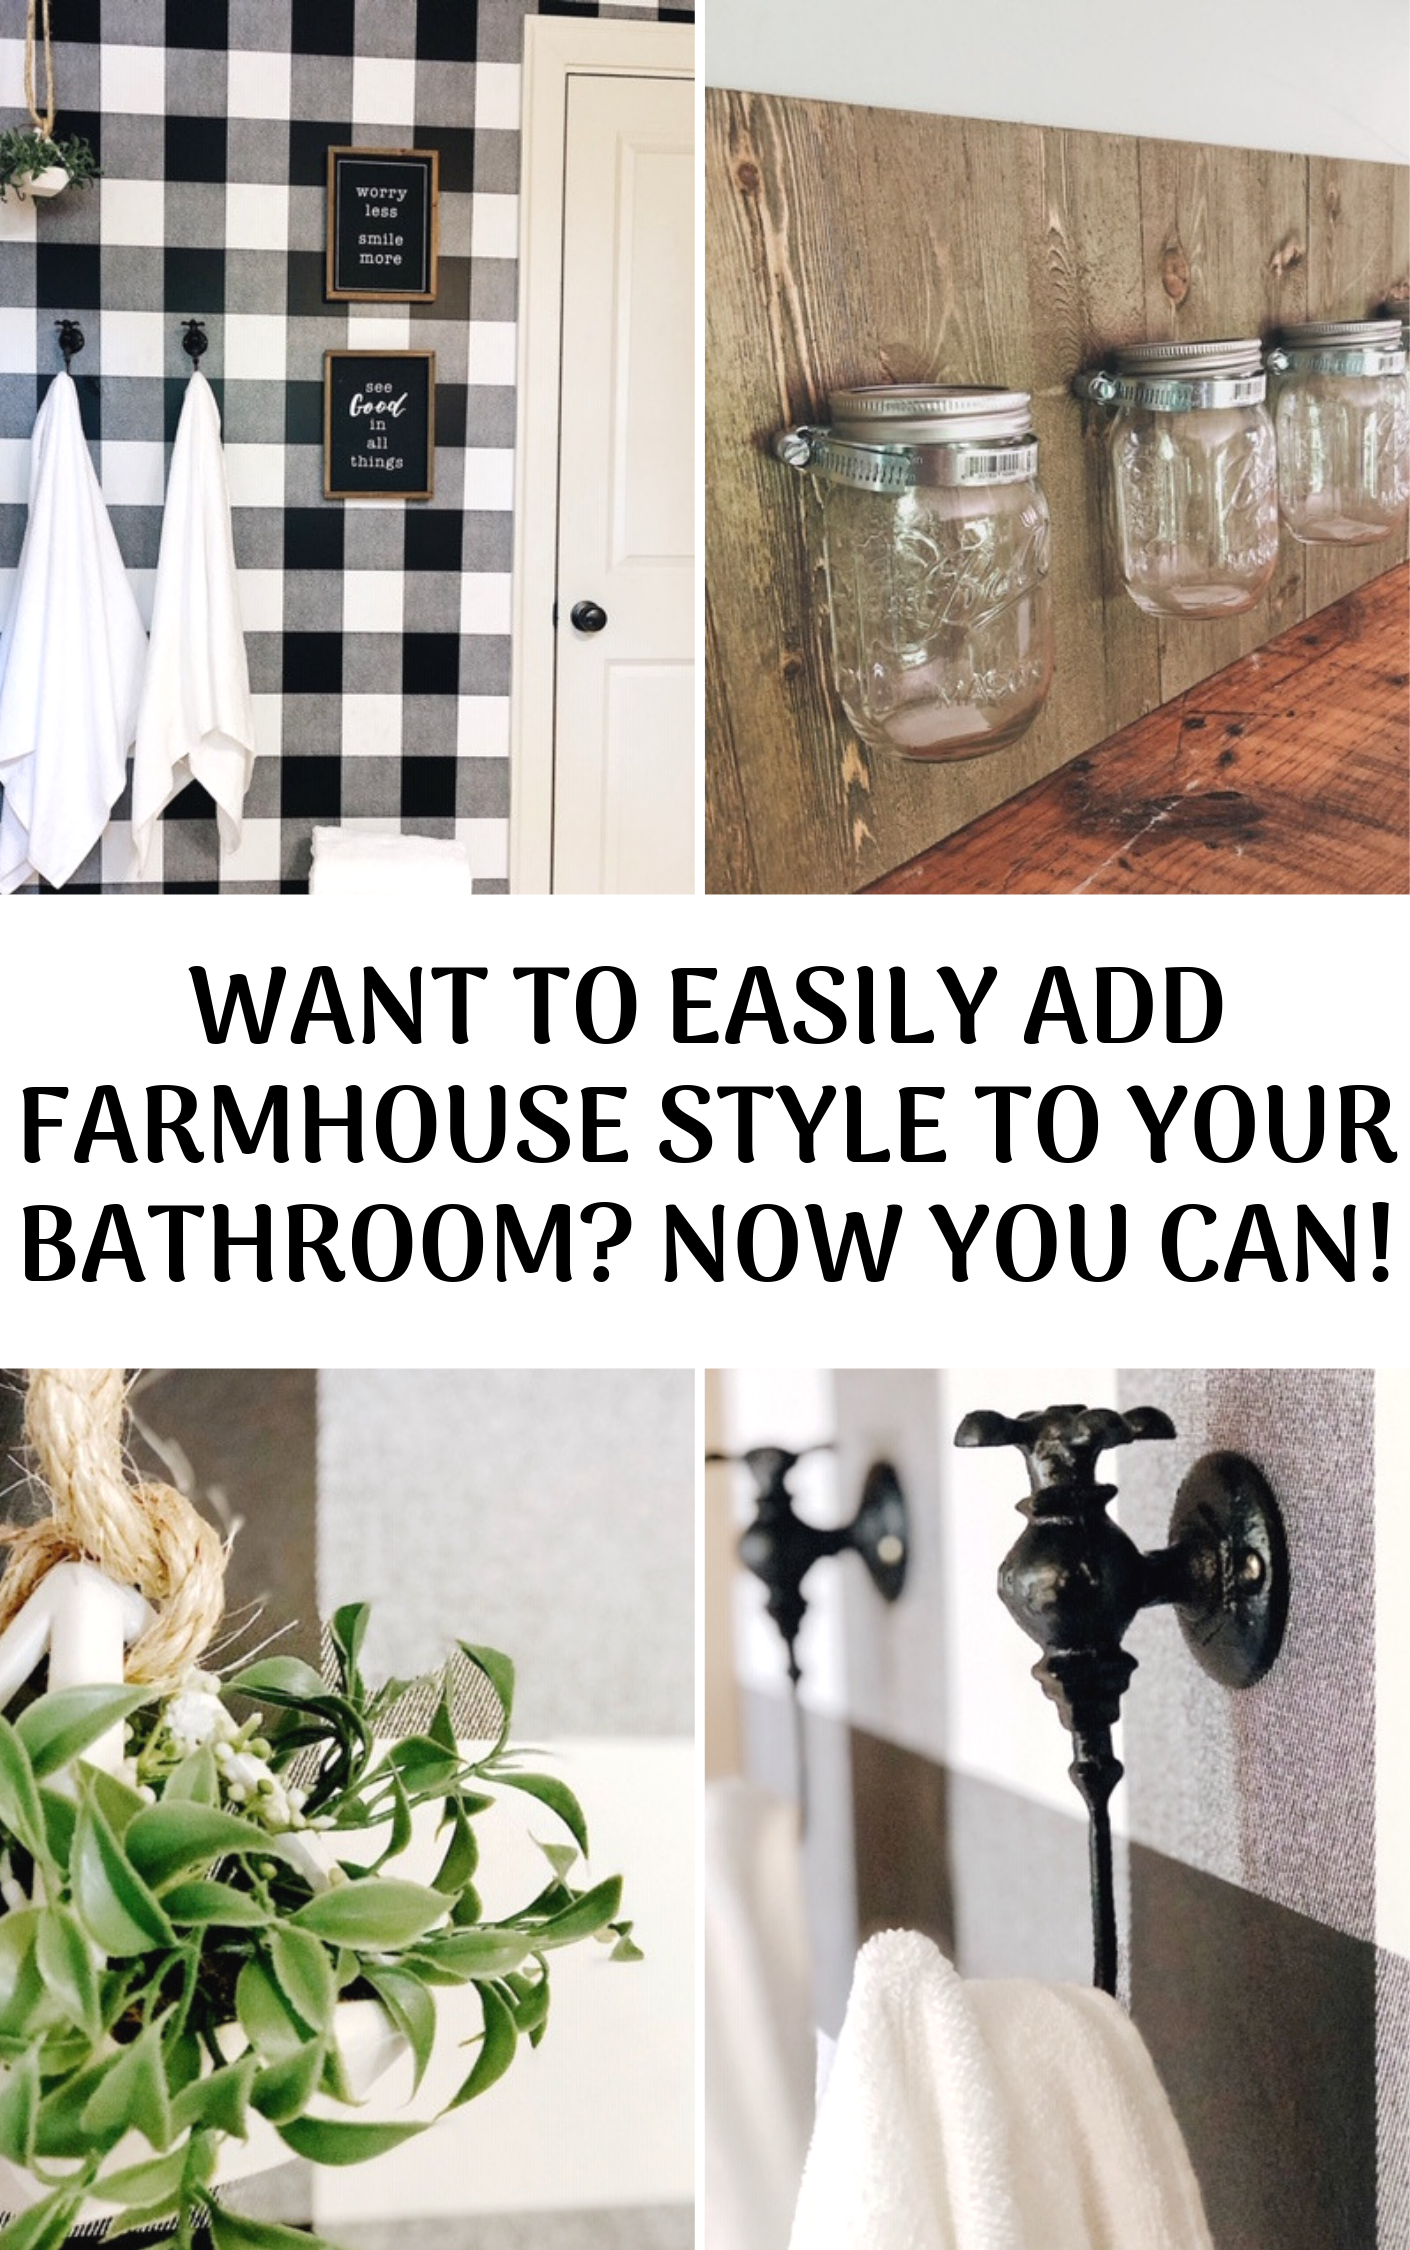 Want To Easily AddFarmhouseStyleToYourBathroom?NowYouCan!.png